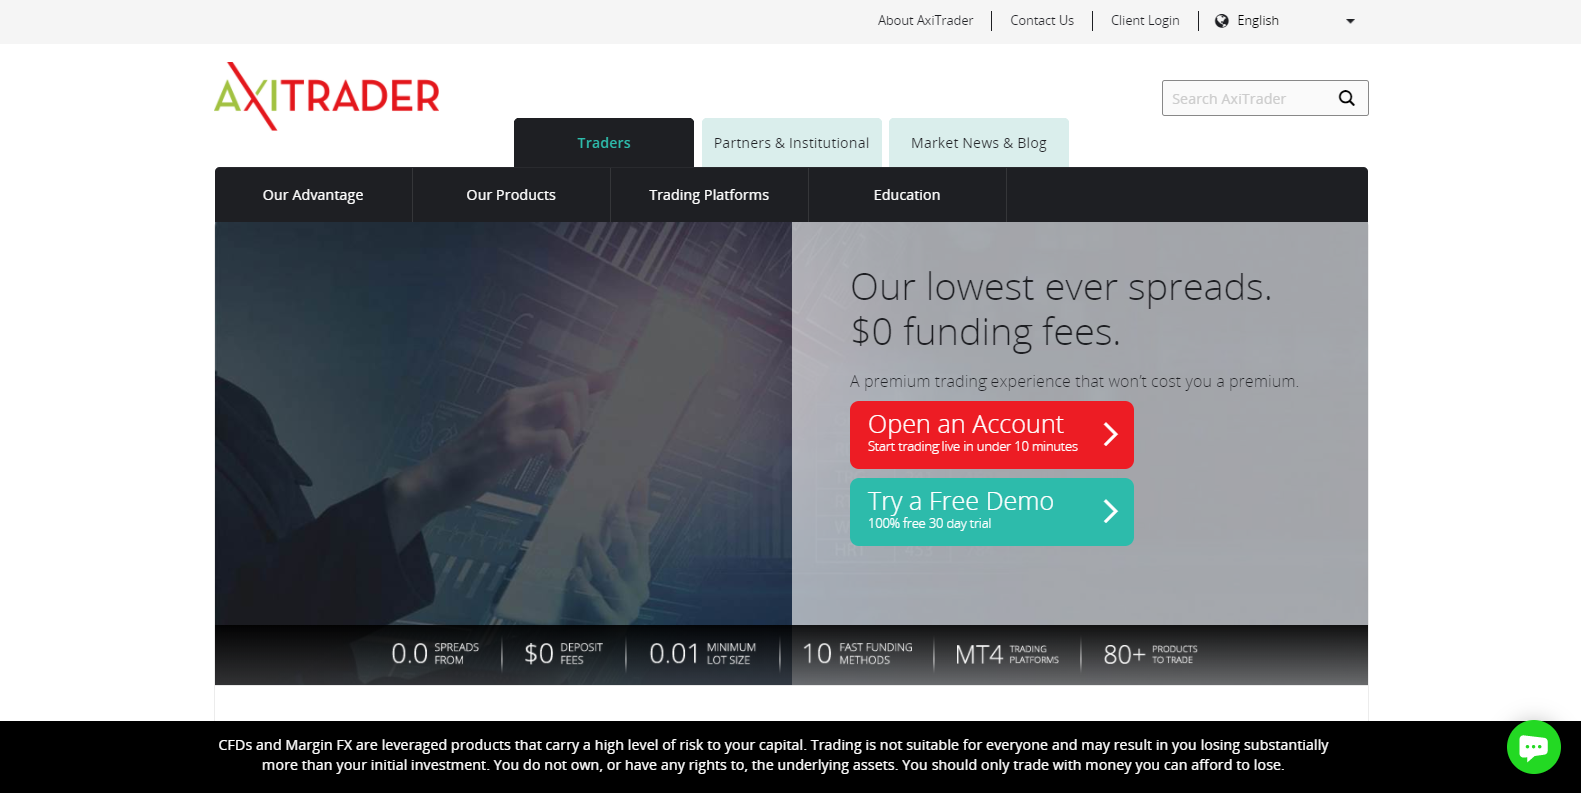 AxiTrader homepage